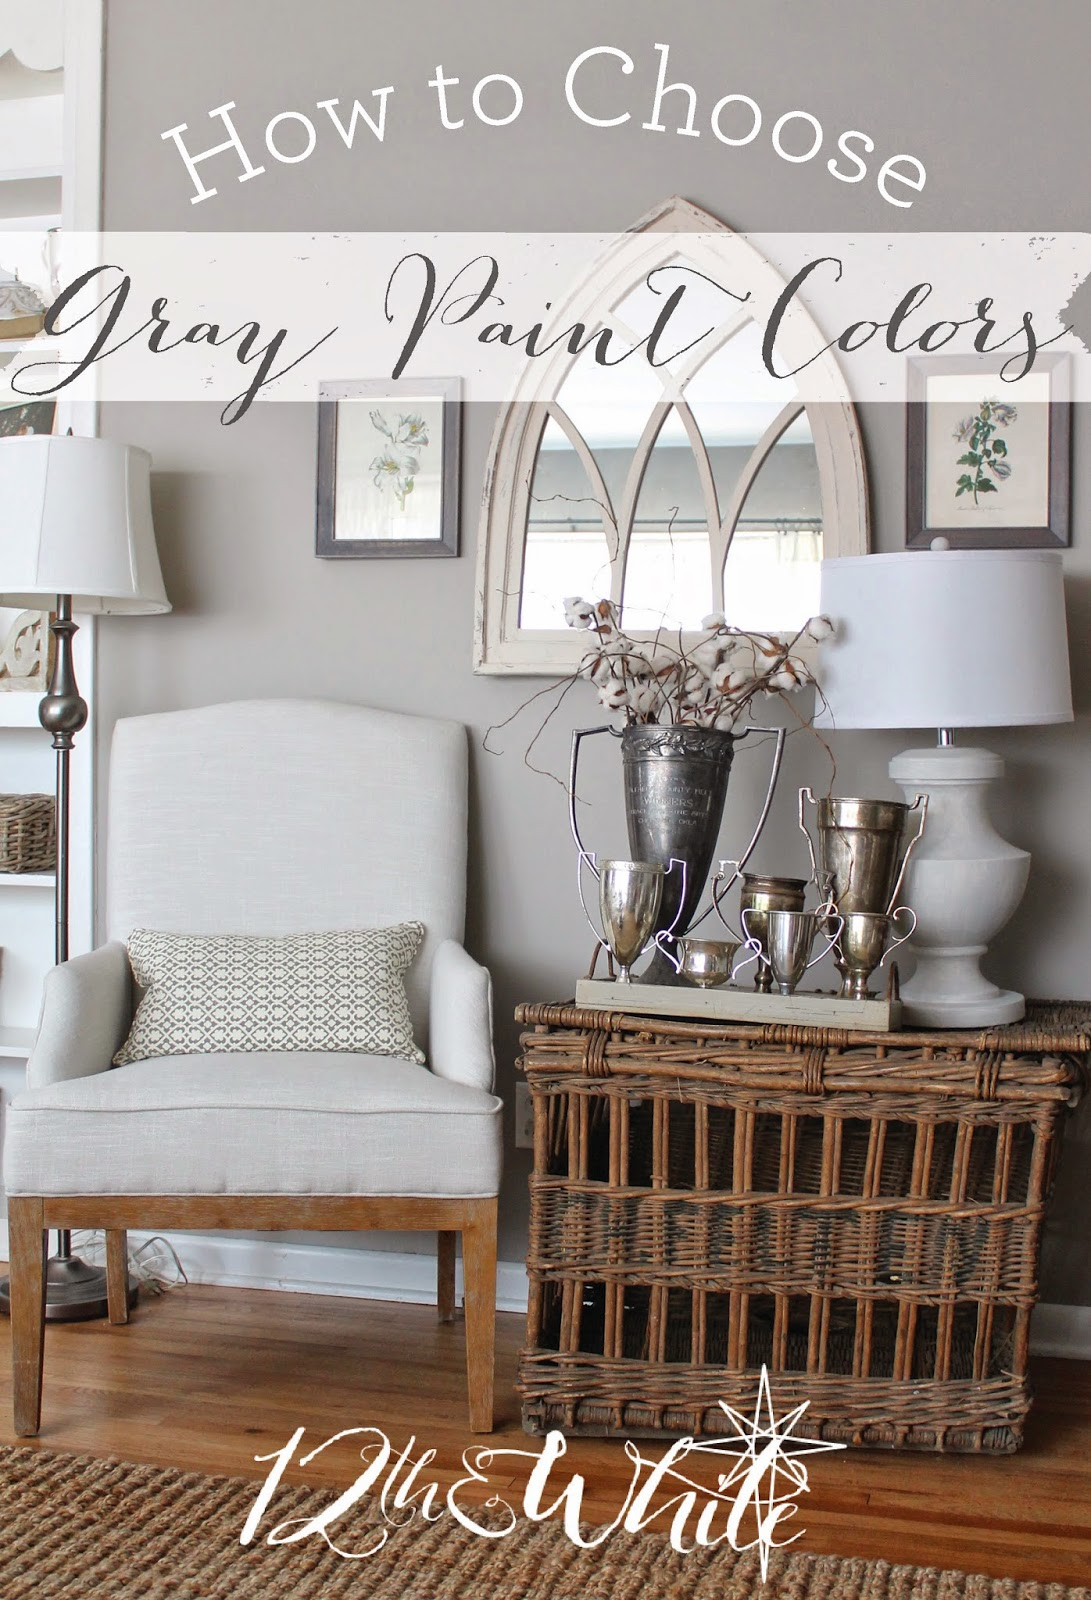 Gray Interior Paint 12th and white: how to choose gray paint colors